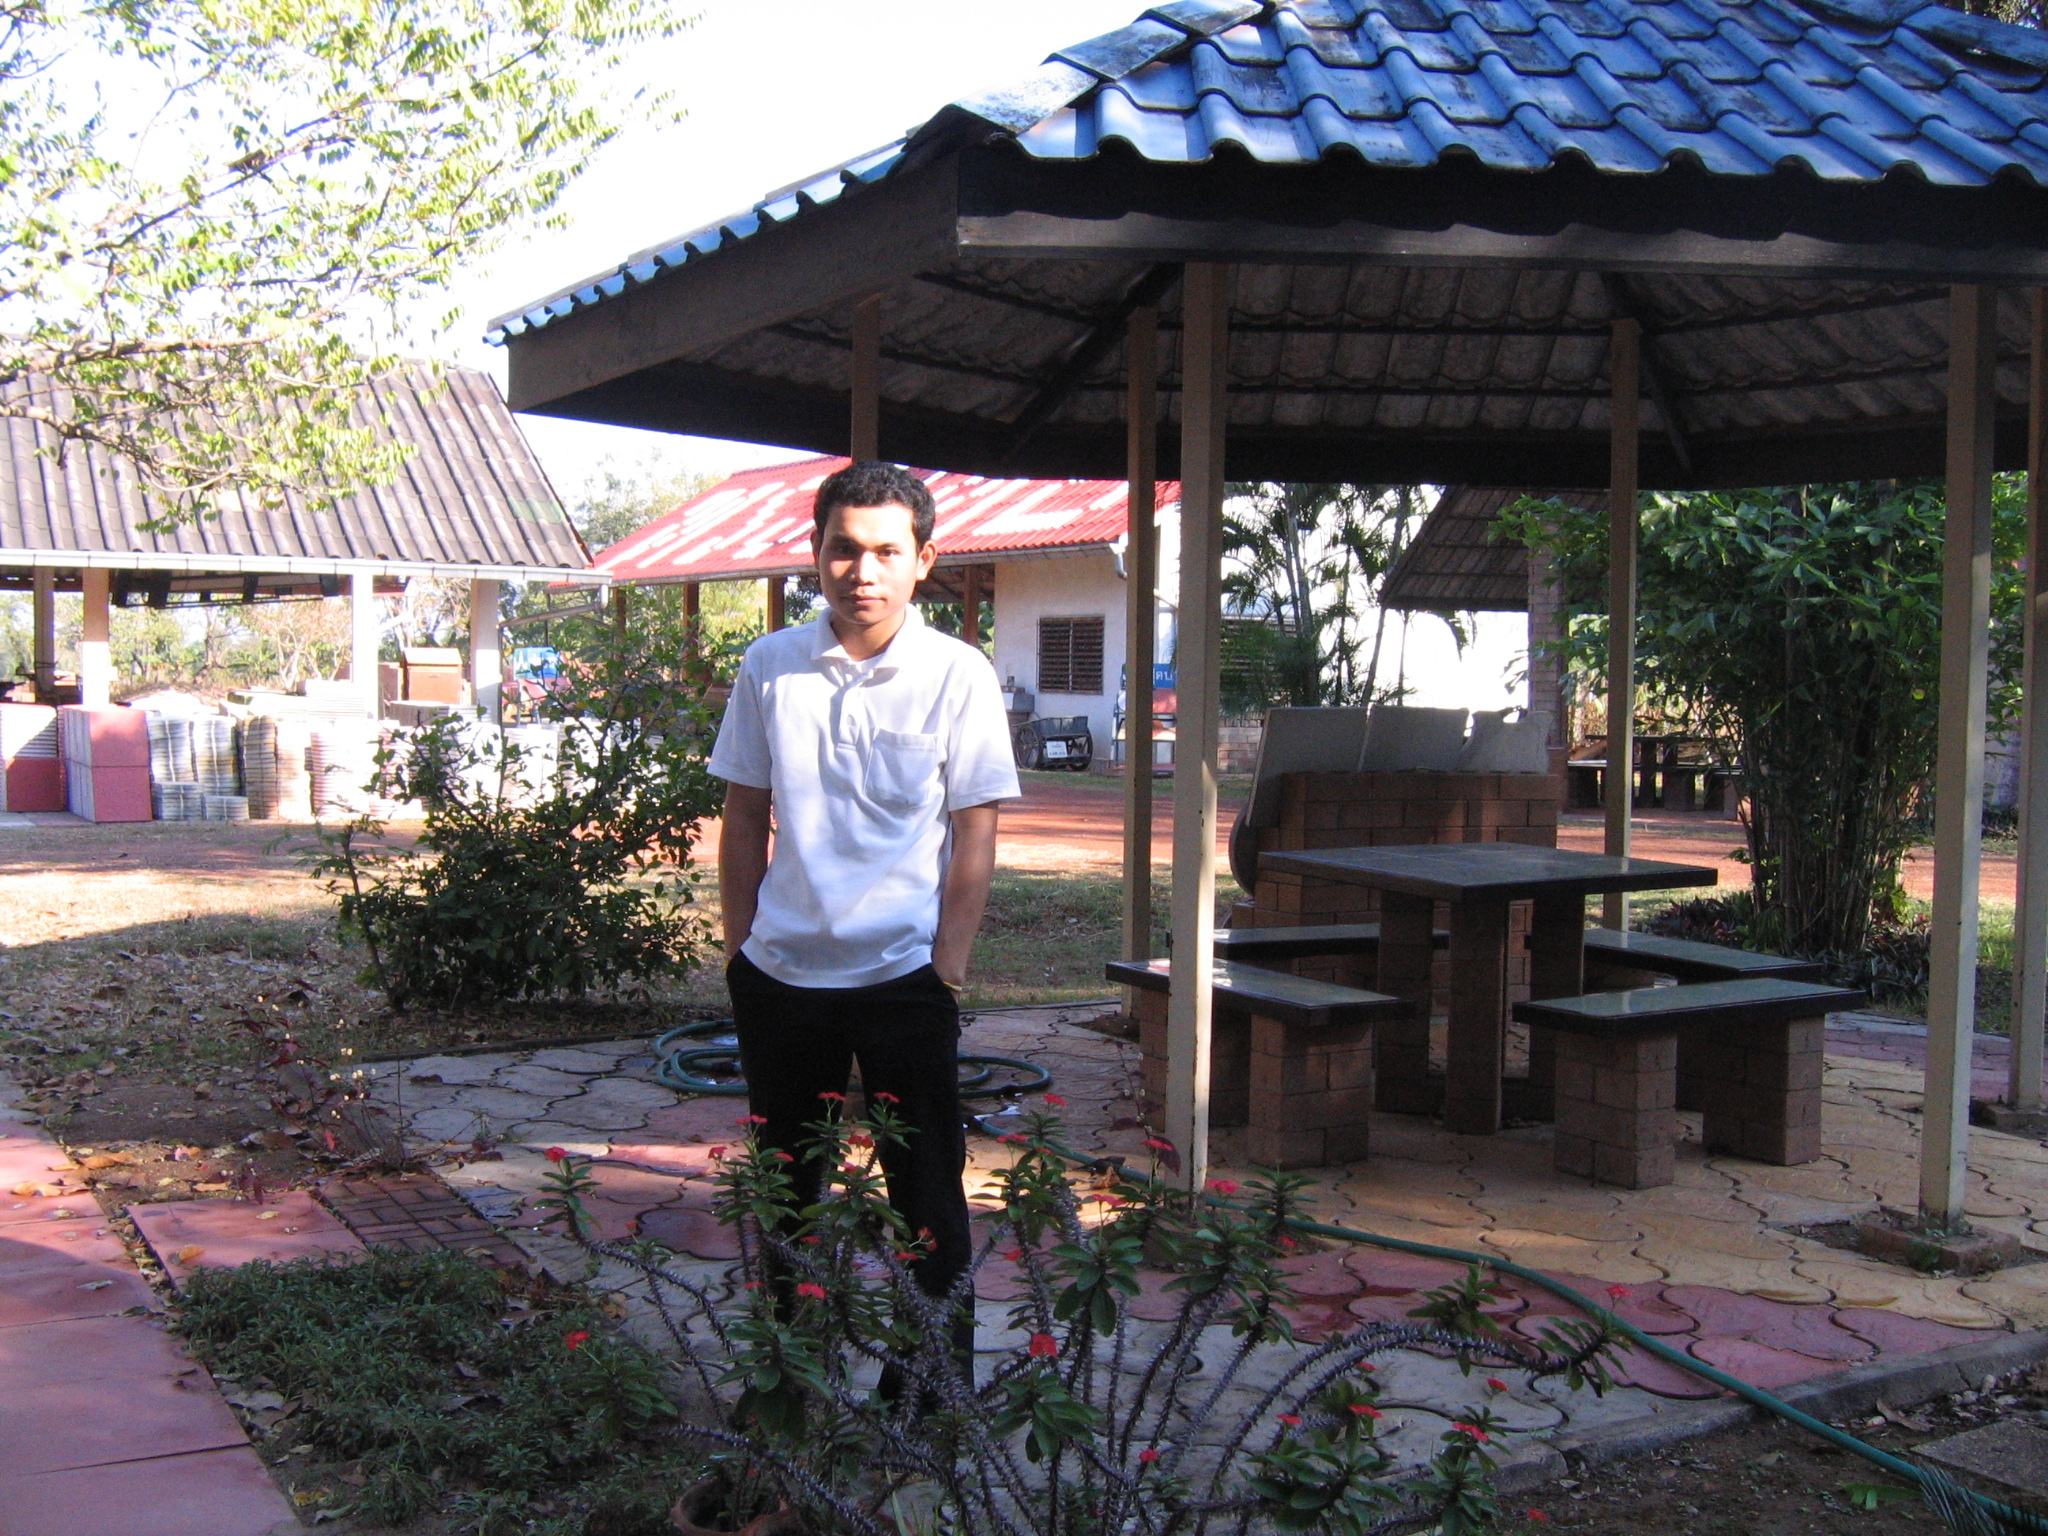 CVBT Gazebo with Anucha, an intern.